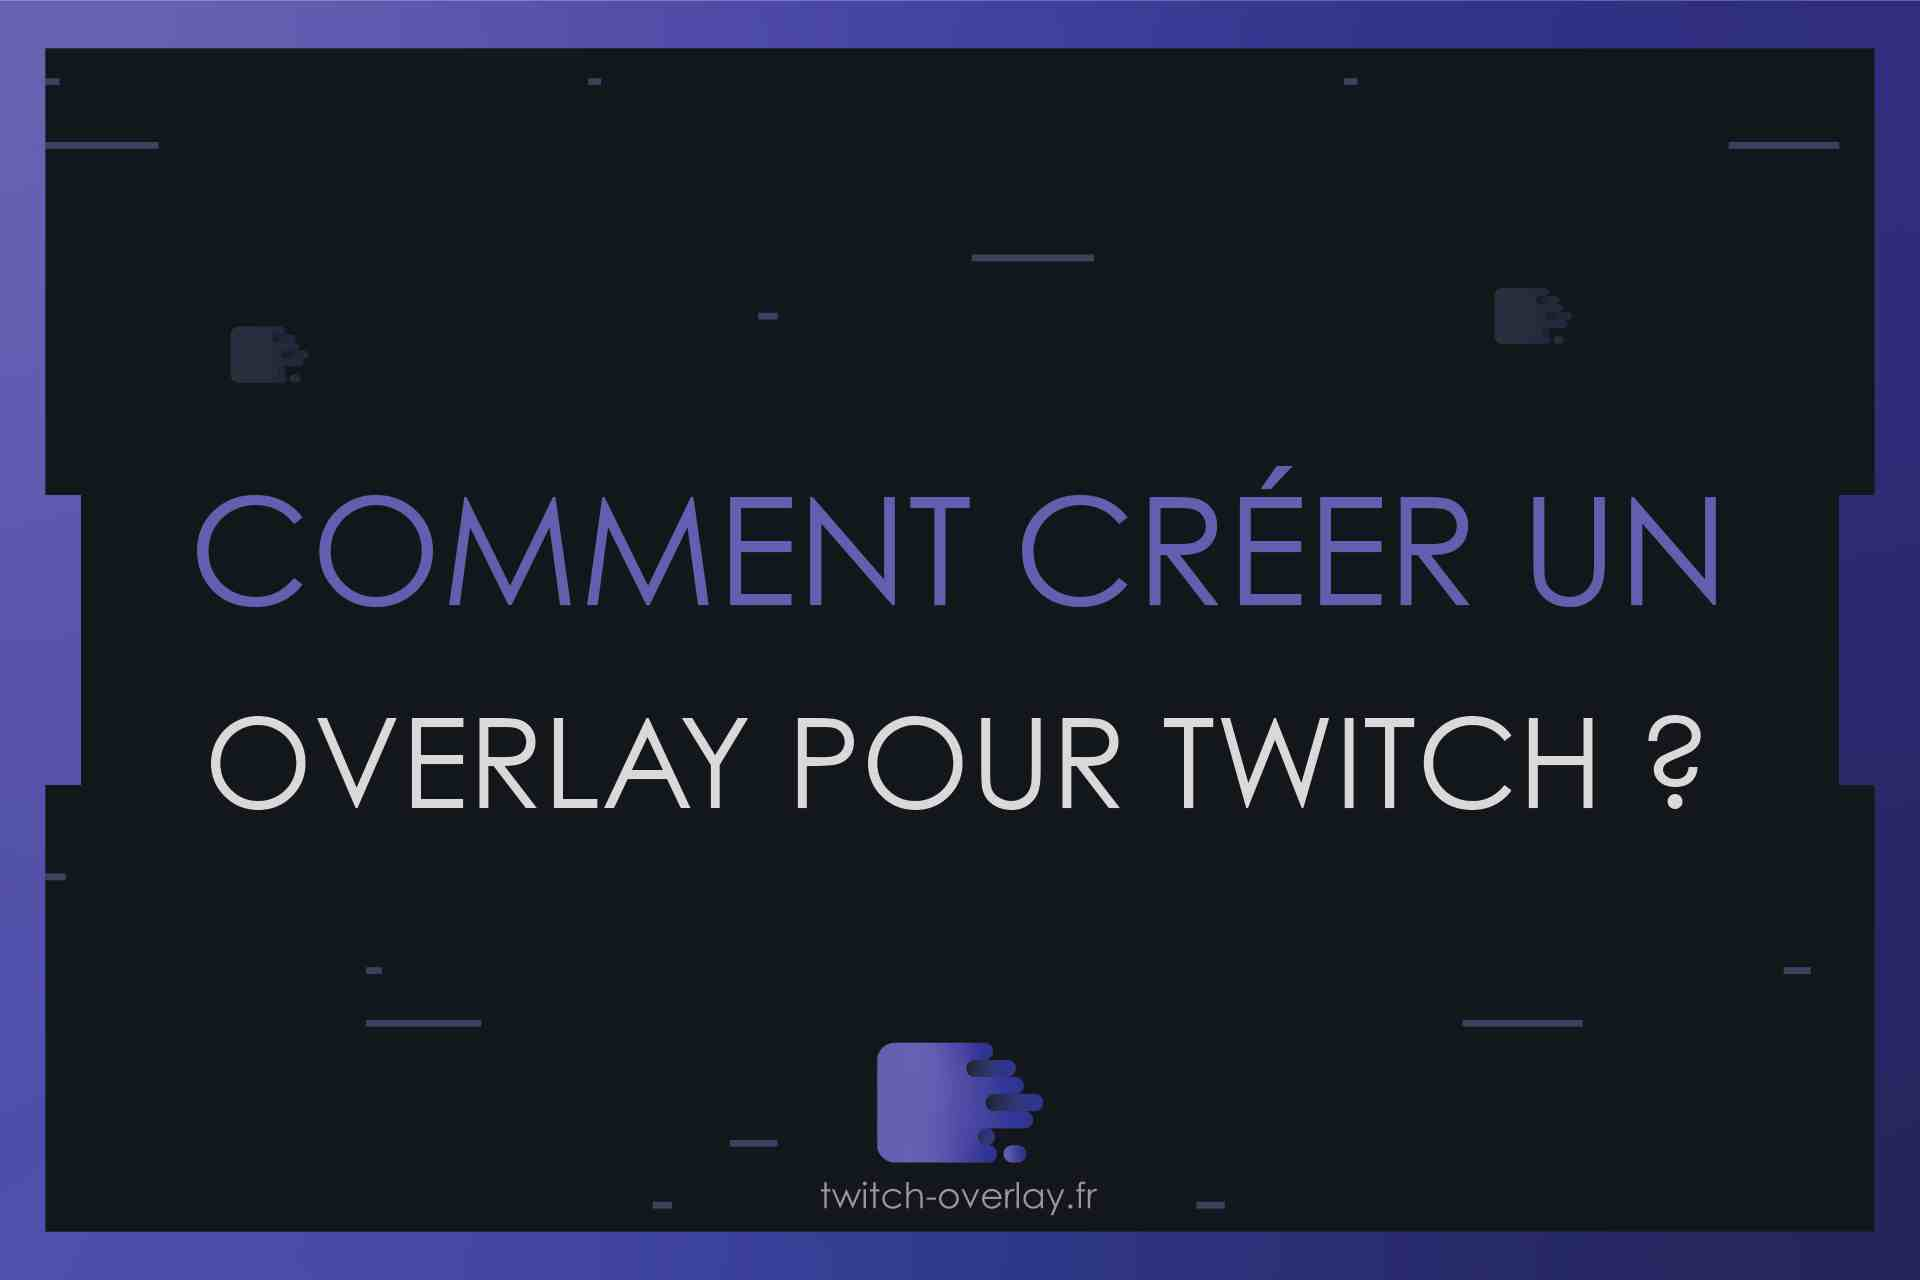 comment creer un overlay pour twitch